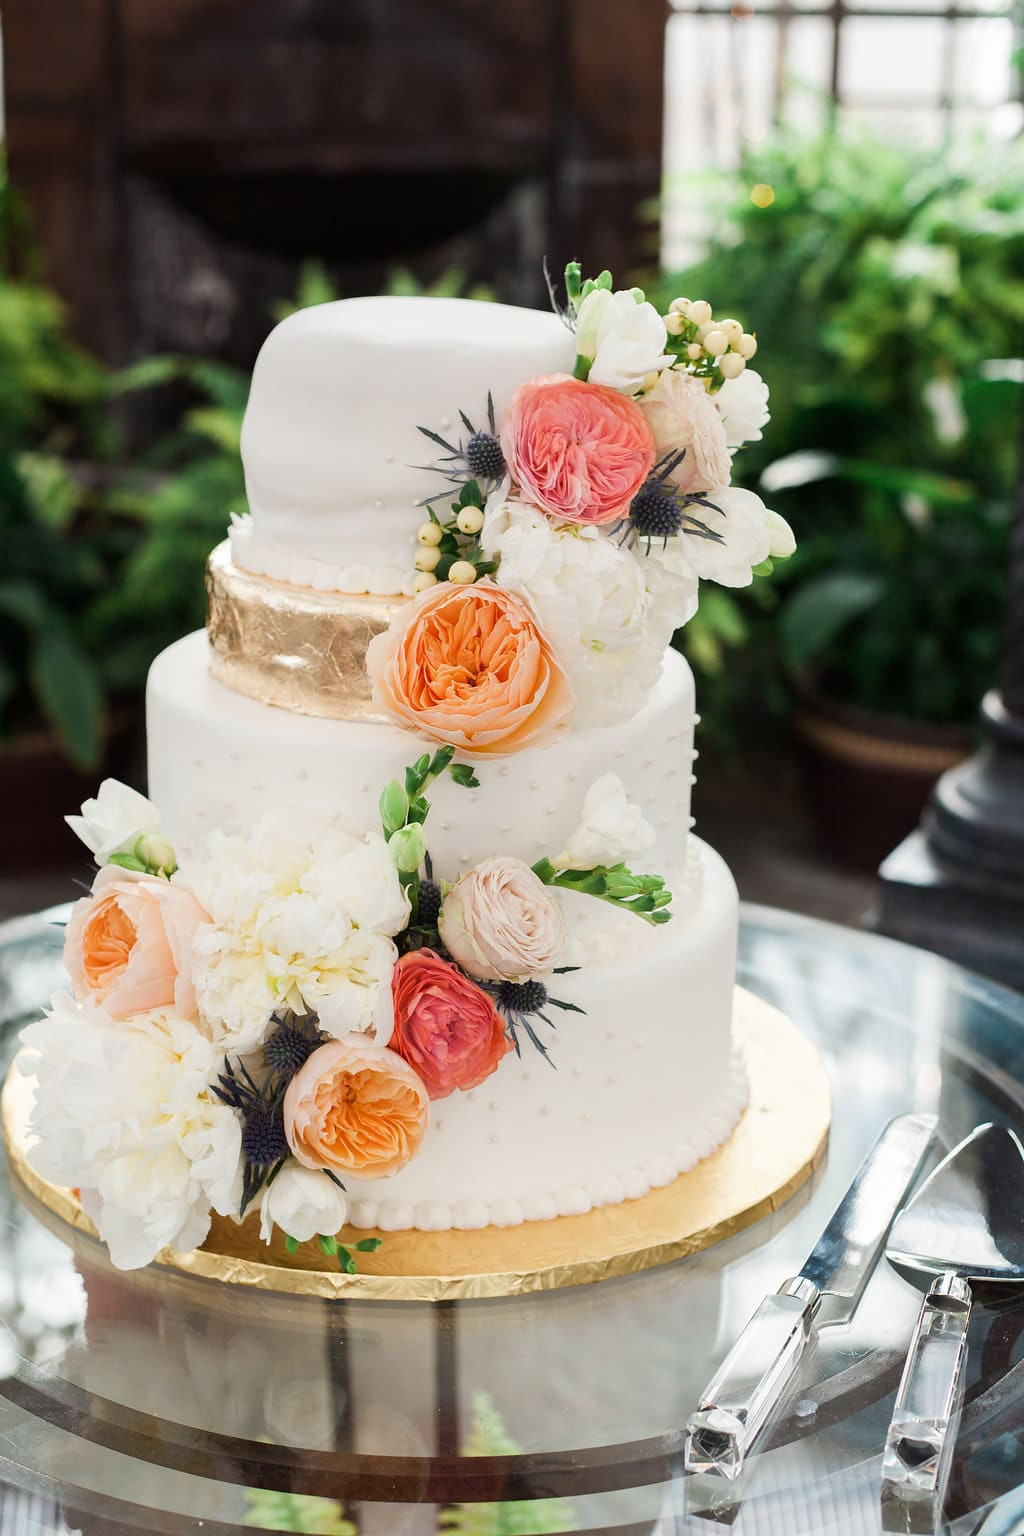 Wedding Cakes Styles  Trendy Wedding Cake Styles Designs and Toppers